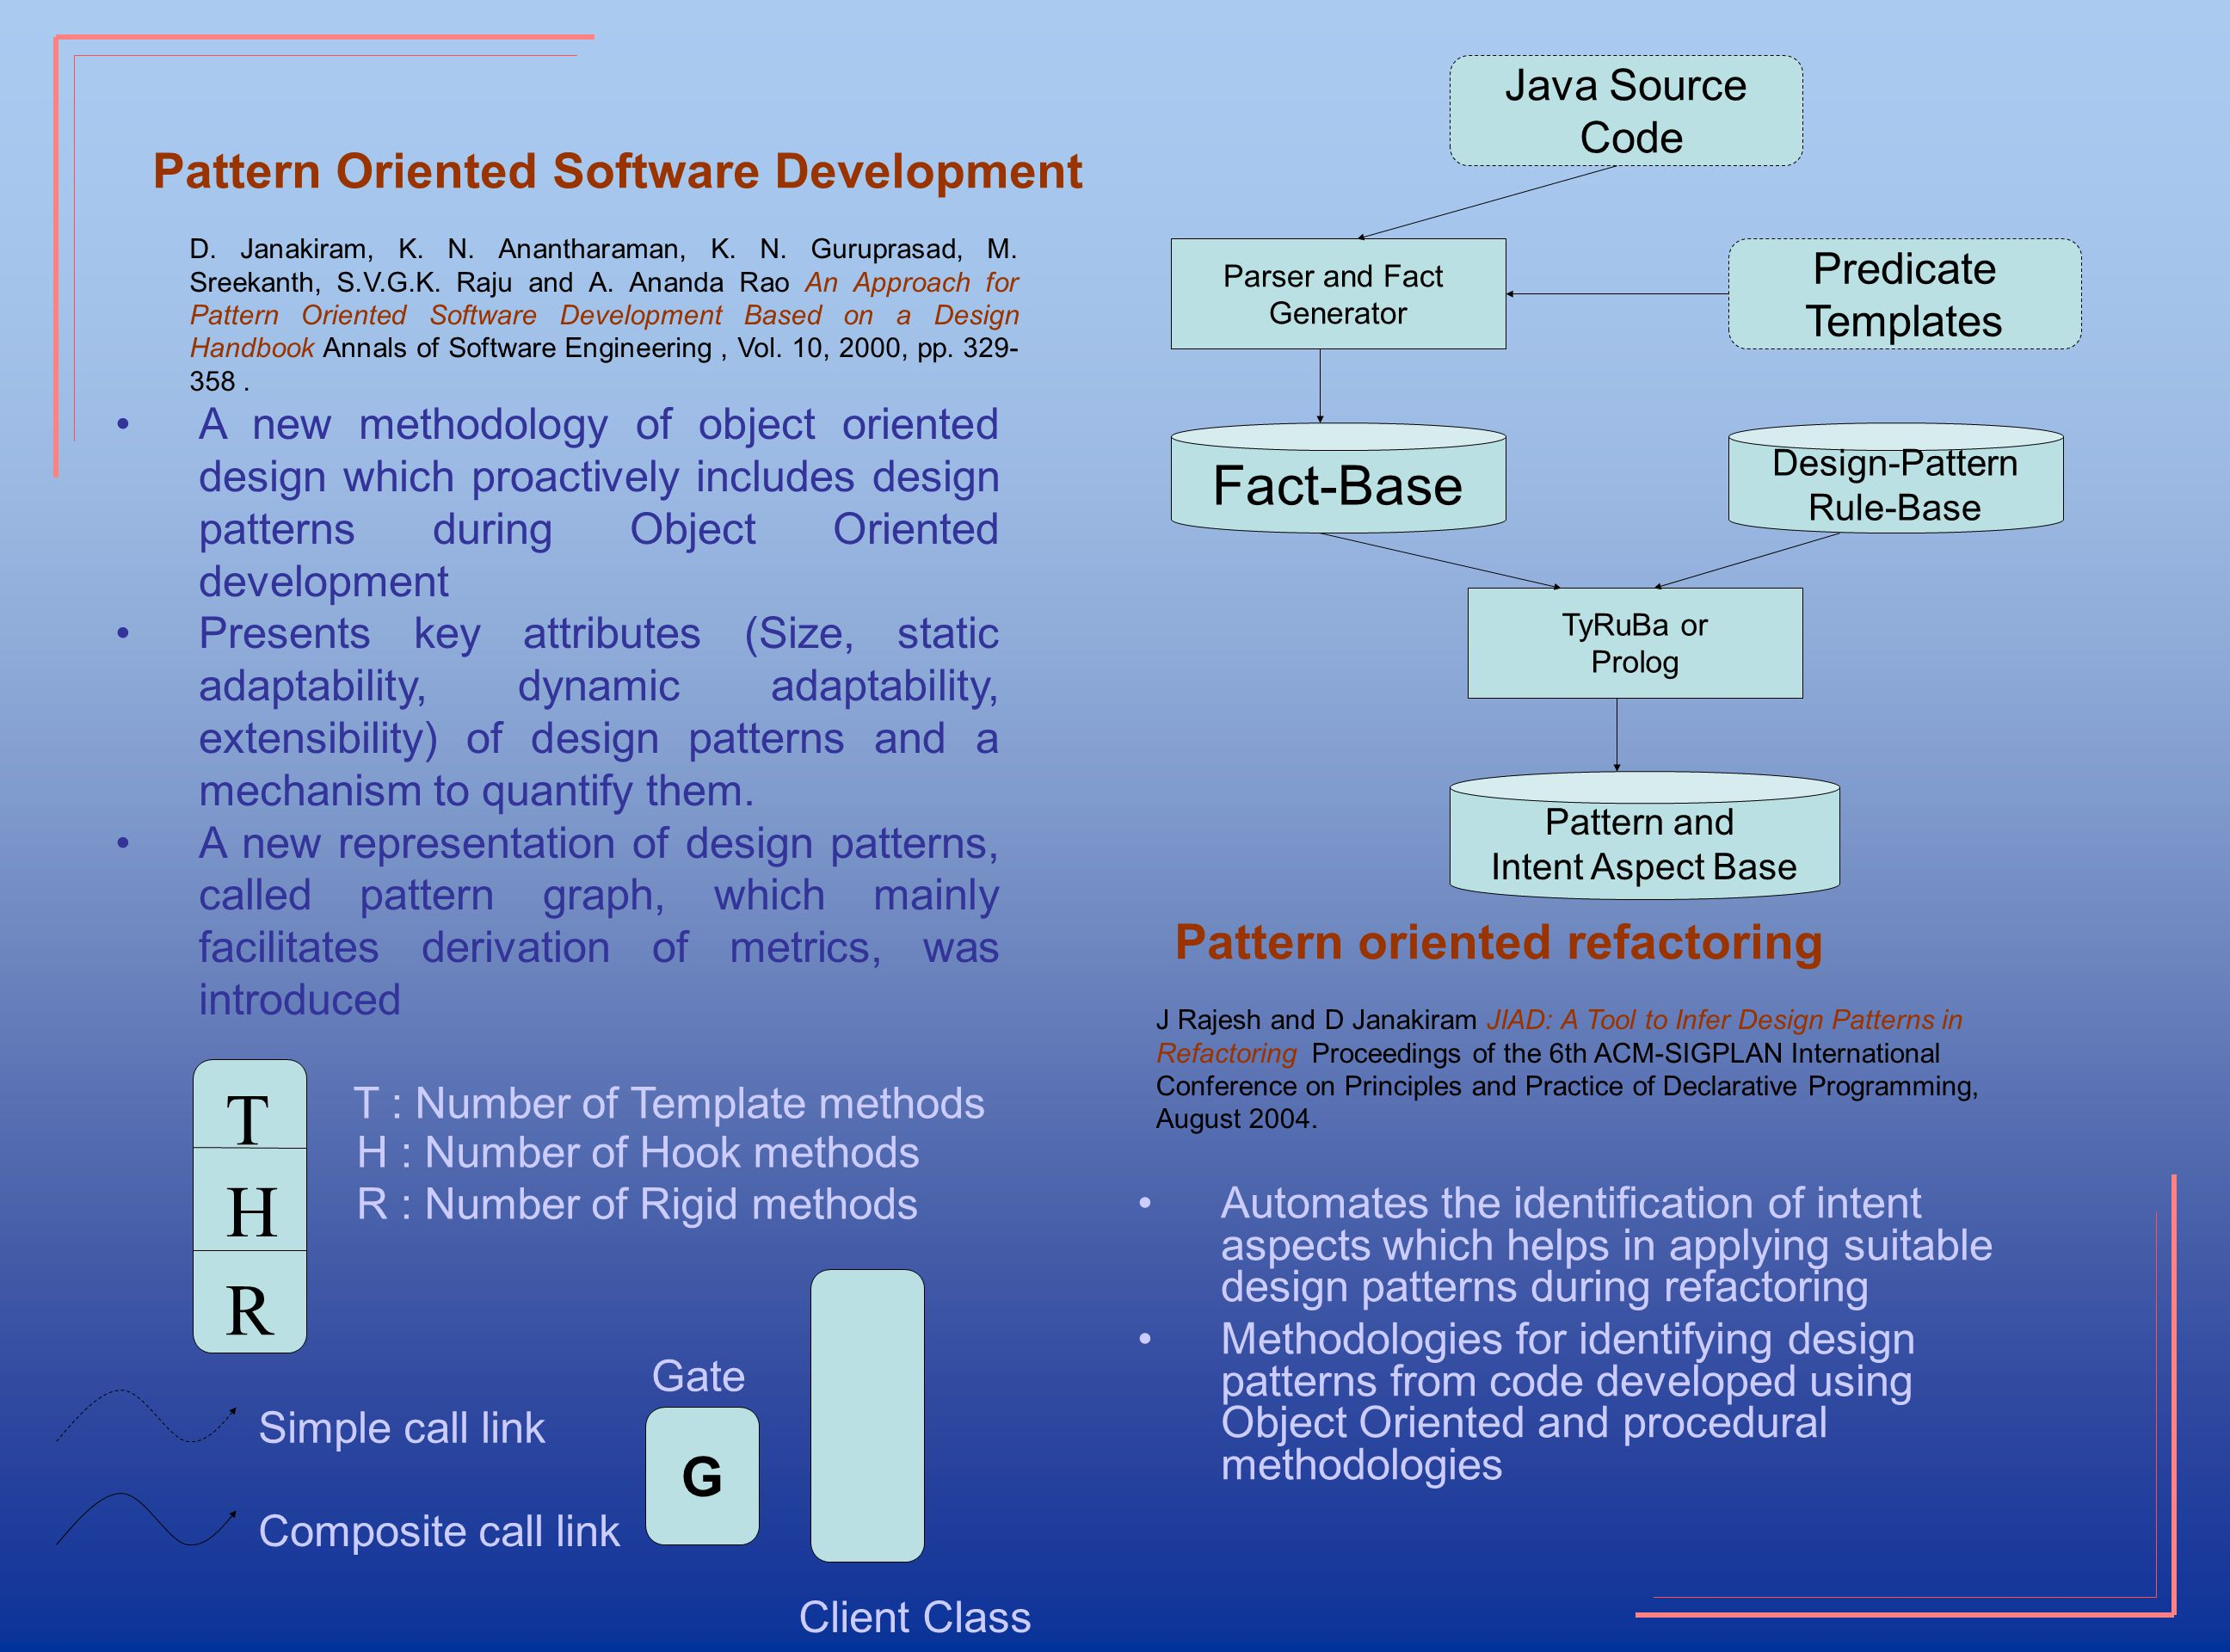 A new methodology of object oriented design which proactively includes design patterns during Object Oriented development Presents key attributes (Size, static adaptability, dynamic adaptability, extensibility) of design patterns and a mechanism to quantify them.